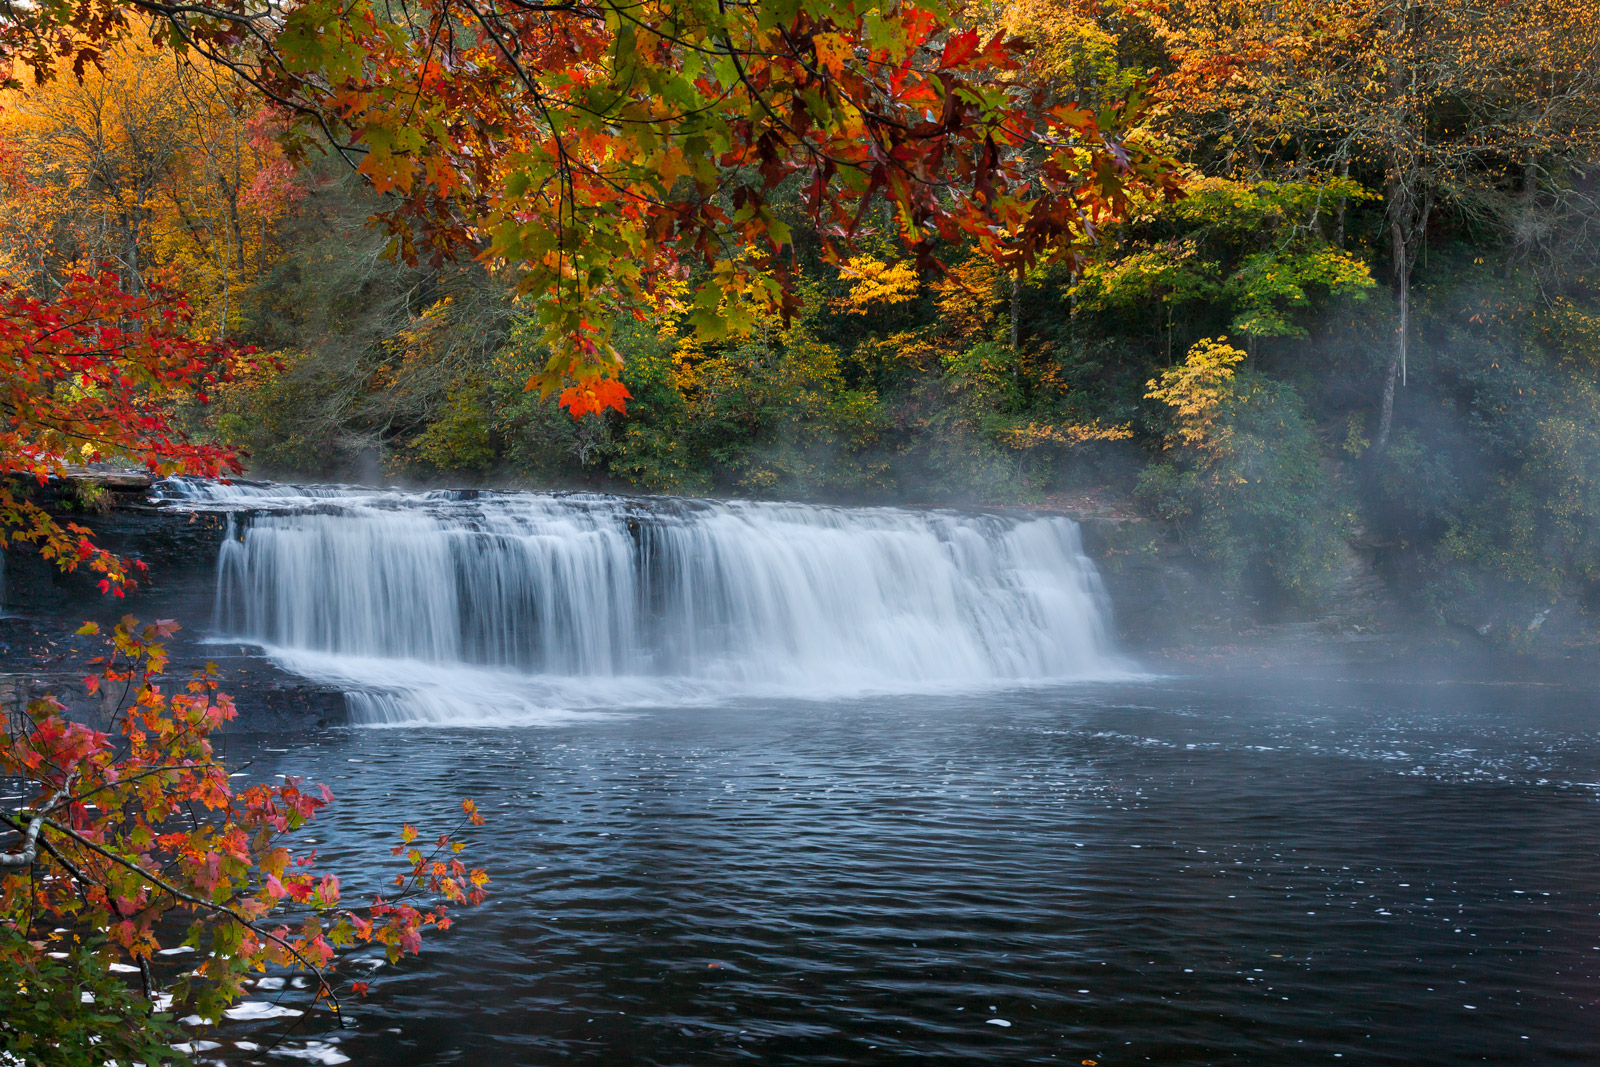 North Carolina, Hooker Falls, Waterfall, Fall Color, limited edition, photograph, fine art, landscape, photo